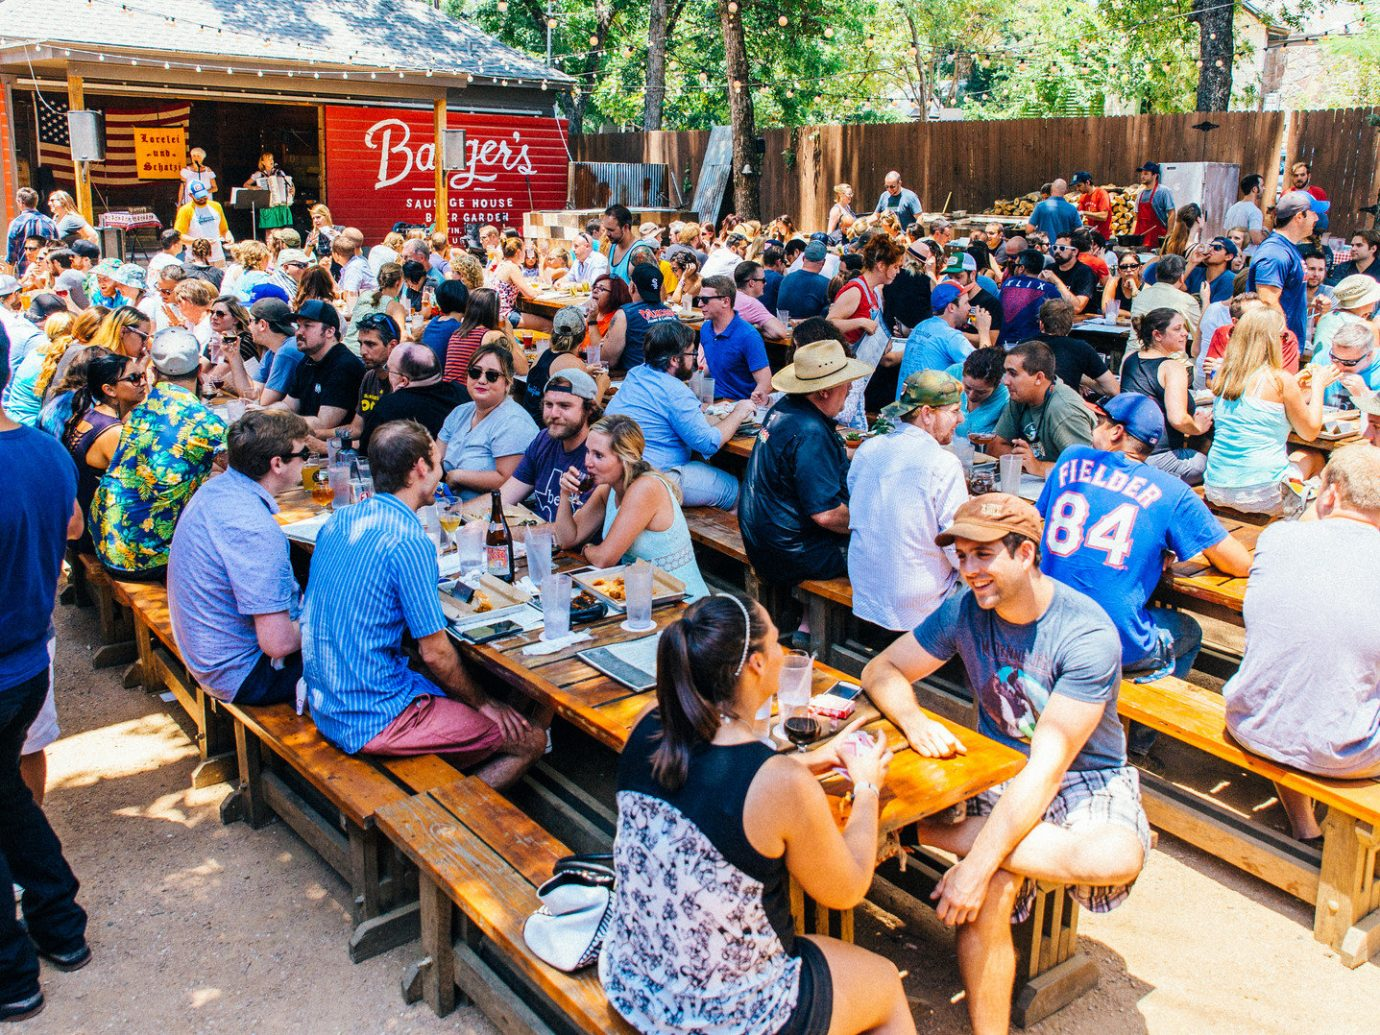 beer garden crowd Food + Drink outdoor dining Patio people Terrace person social group outdoor scene group youth community